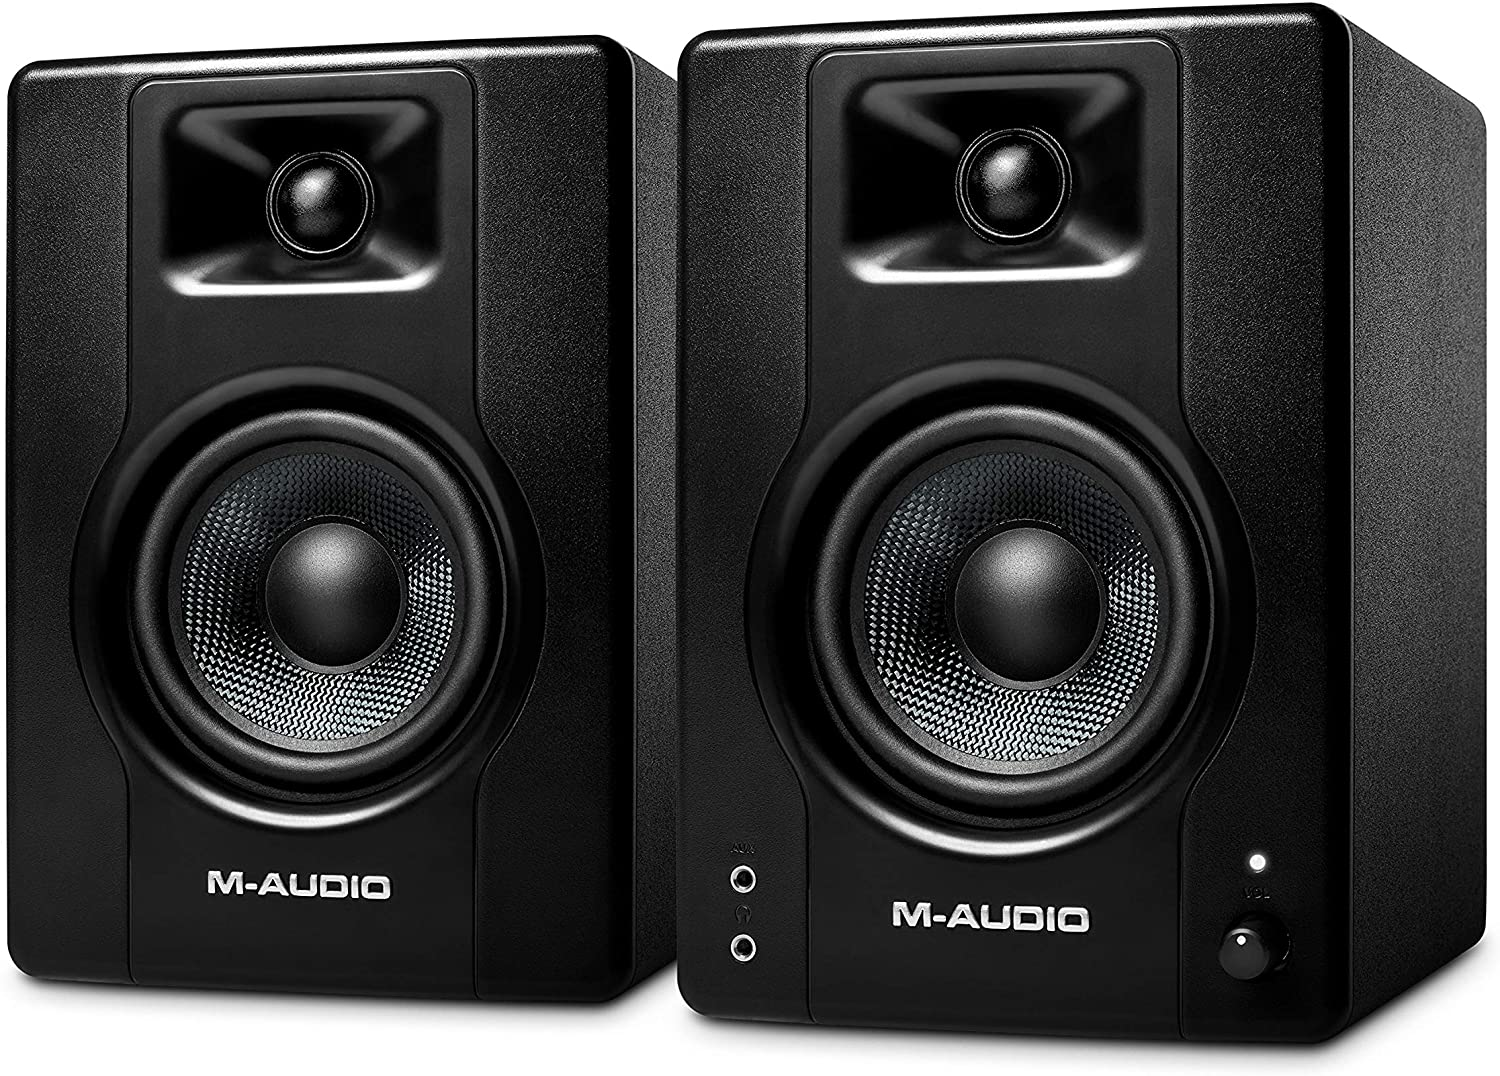 M-Audio BX4 – 120-Watt Powered Desktop Computer Speakers / Studio Monitors for Gaming, Music Production, Live Streaming and Podcasting (Pair) Pro Audio M-Audio